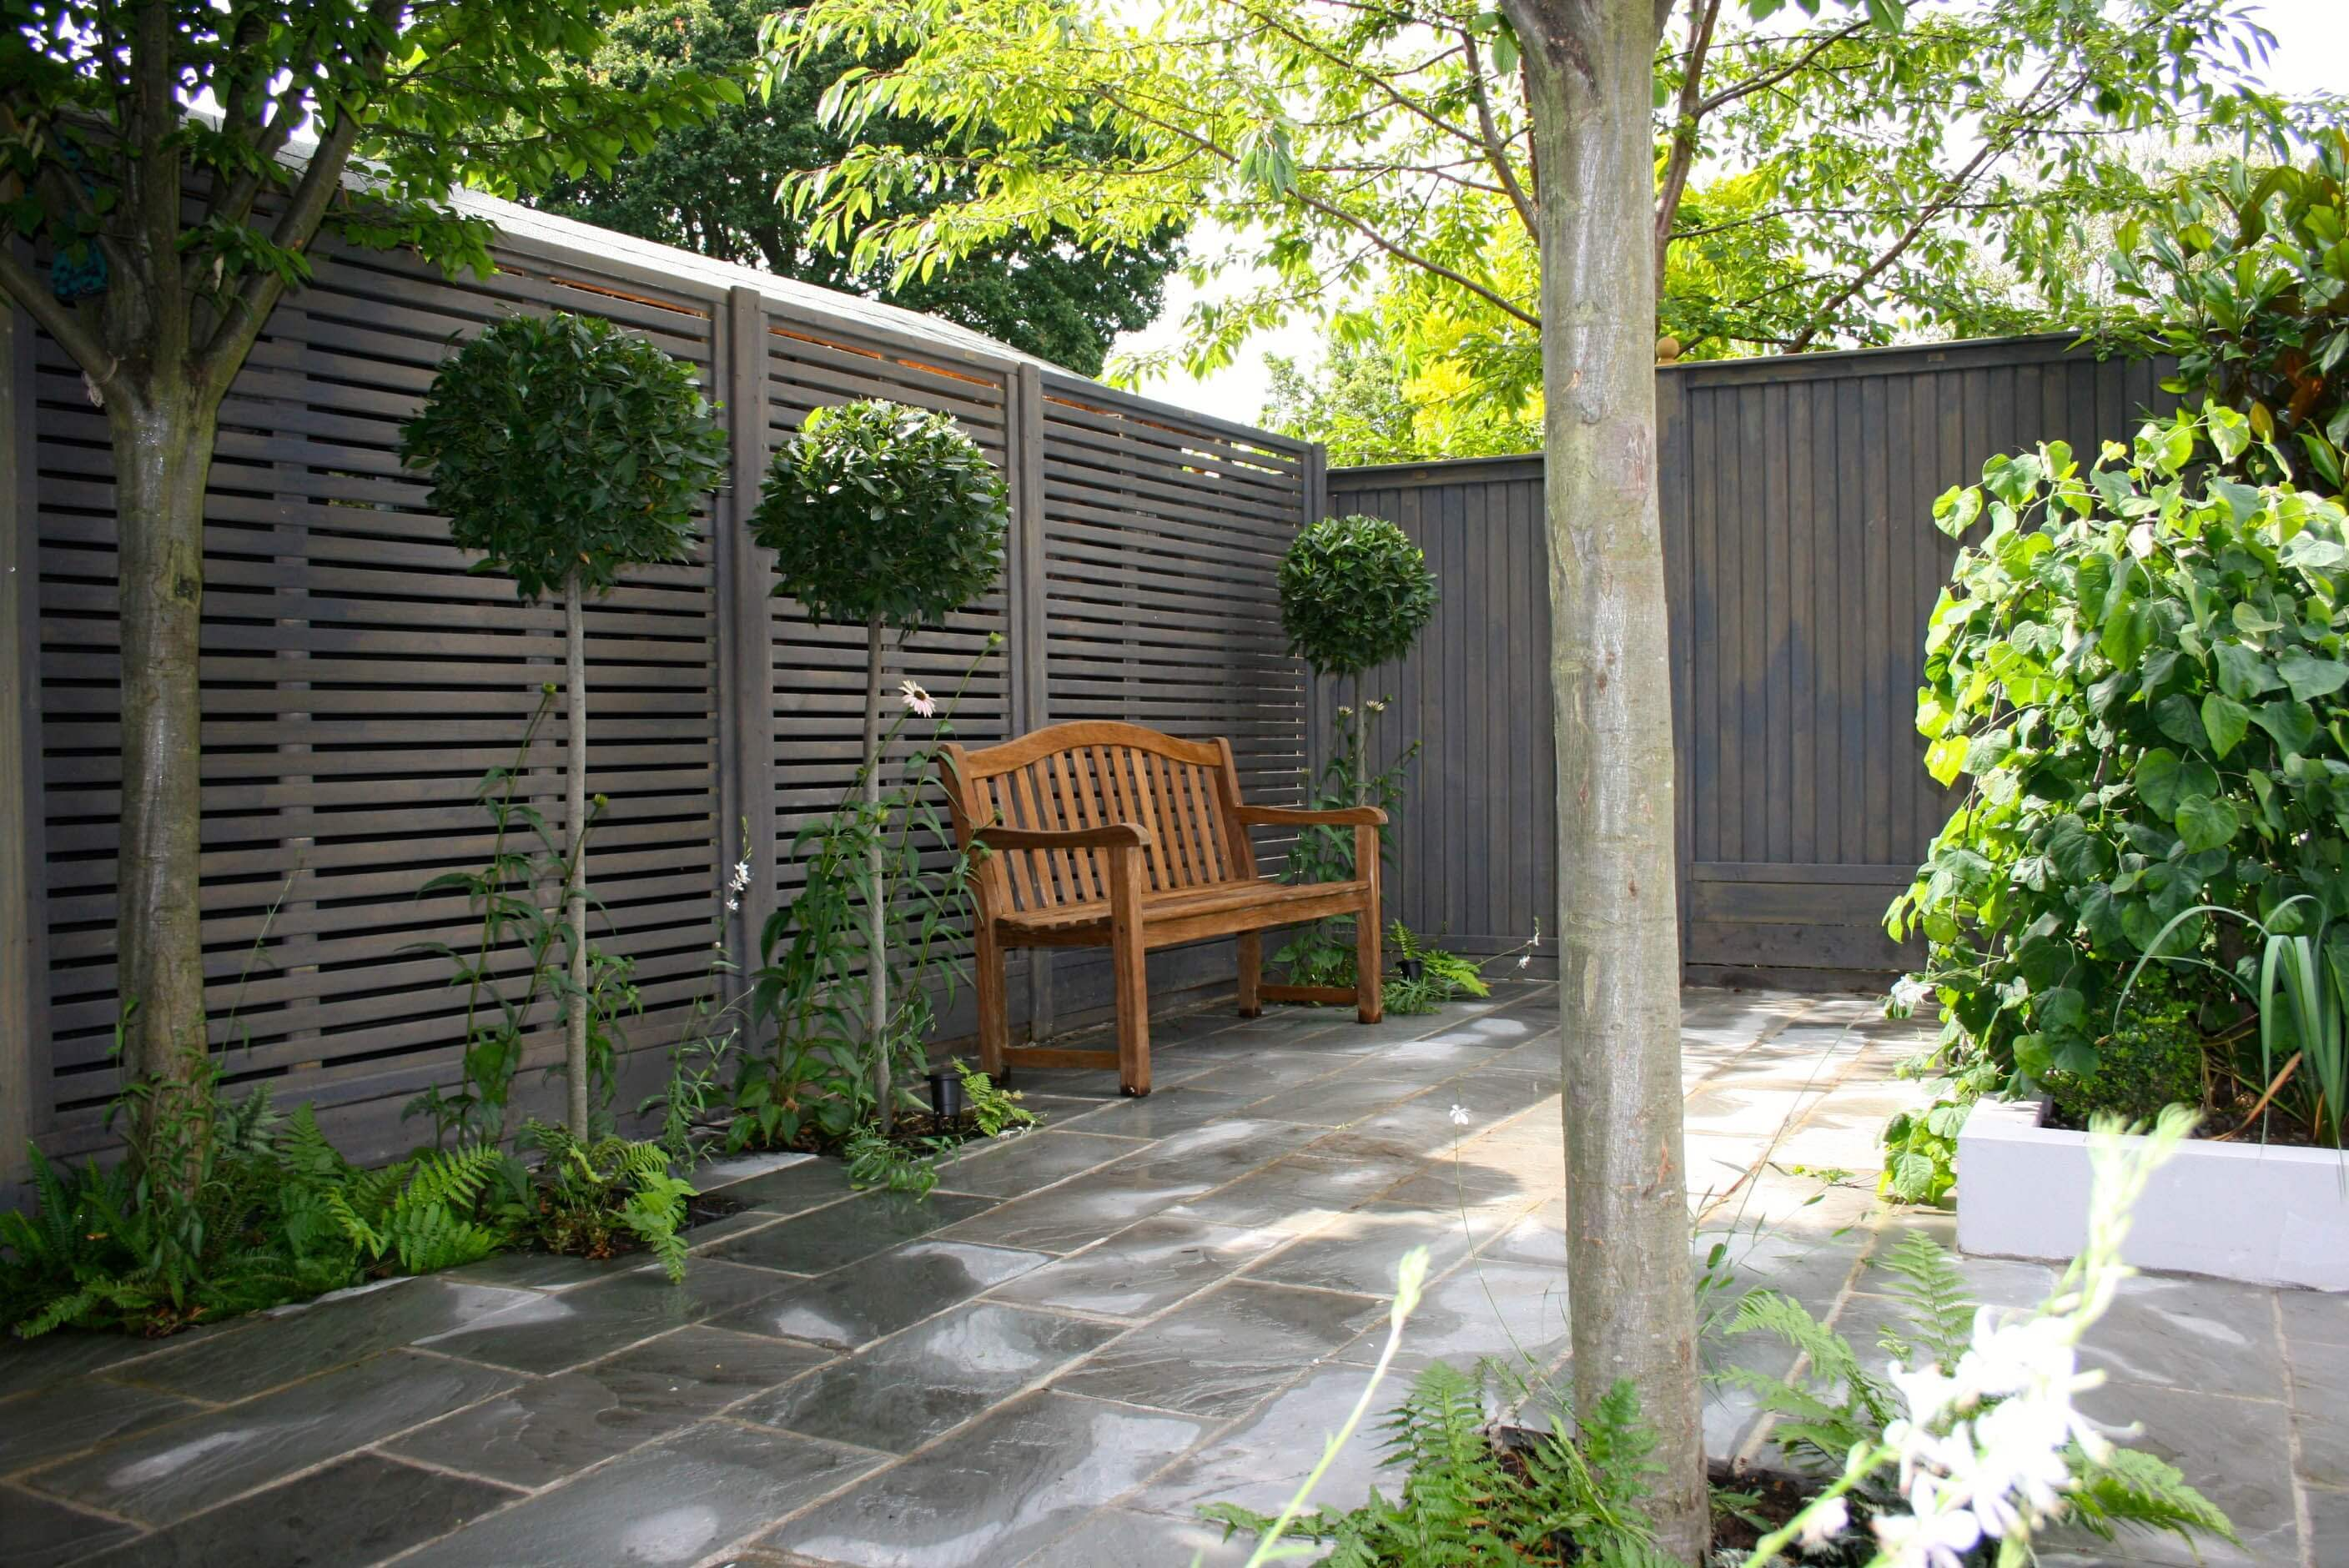 Contemporary Garden Fences Uk - Best Fence For Security 2017